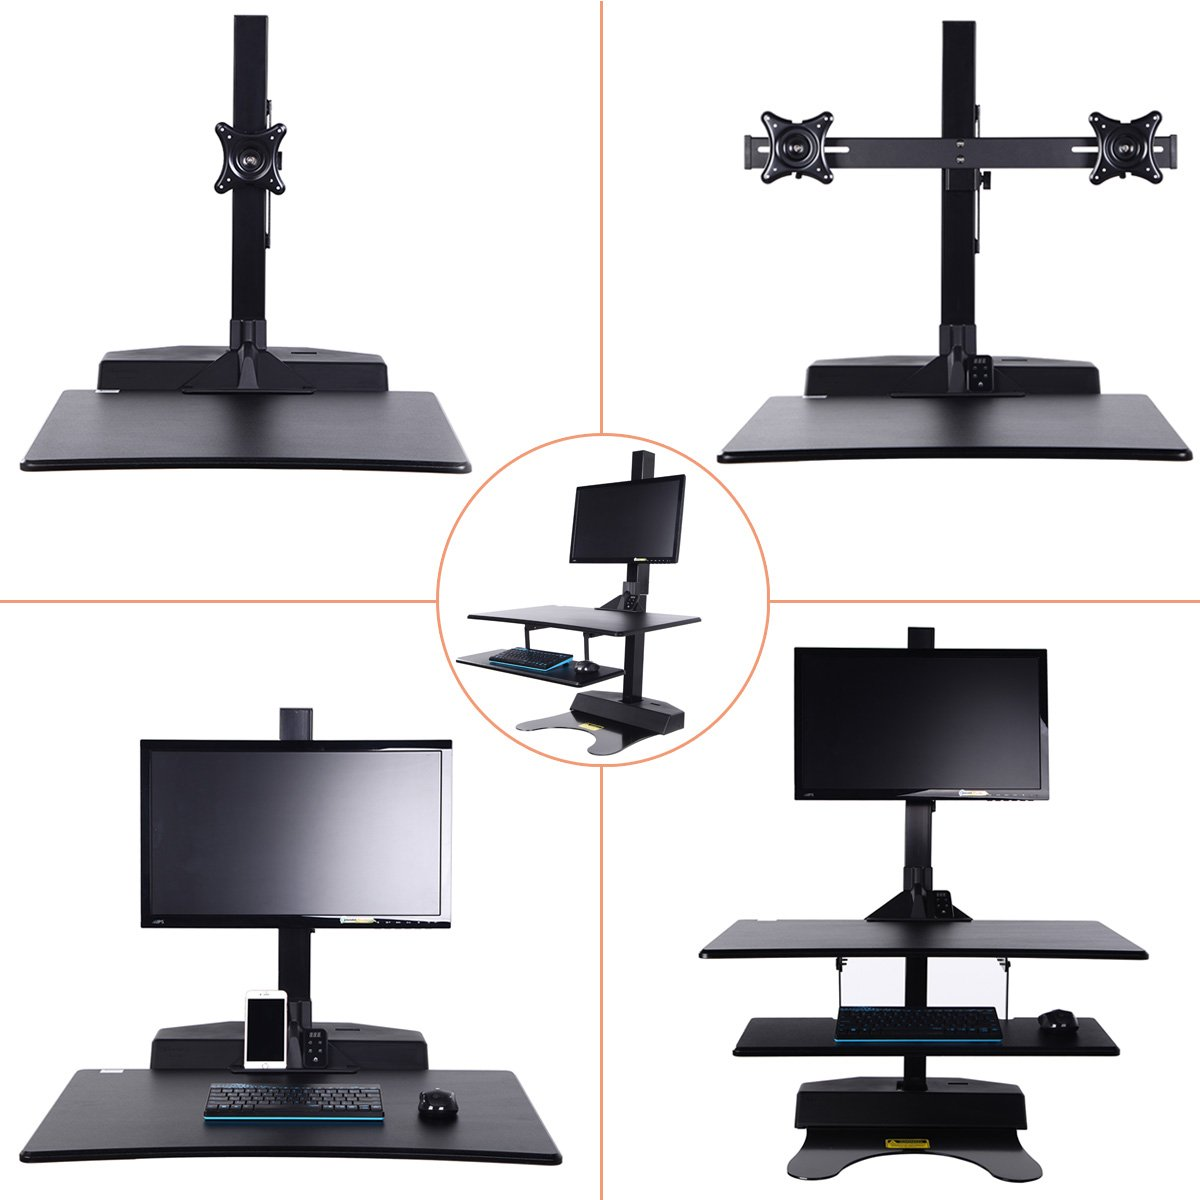 Standing Desk Riser, Freemaxdesk Electric Power Remote Control Height Adjustable Sit to Stand Desk Converter with Monitor Vesa Mount ,Worksuface(26''x21'') by freemaxdesk (Image #4)